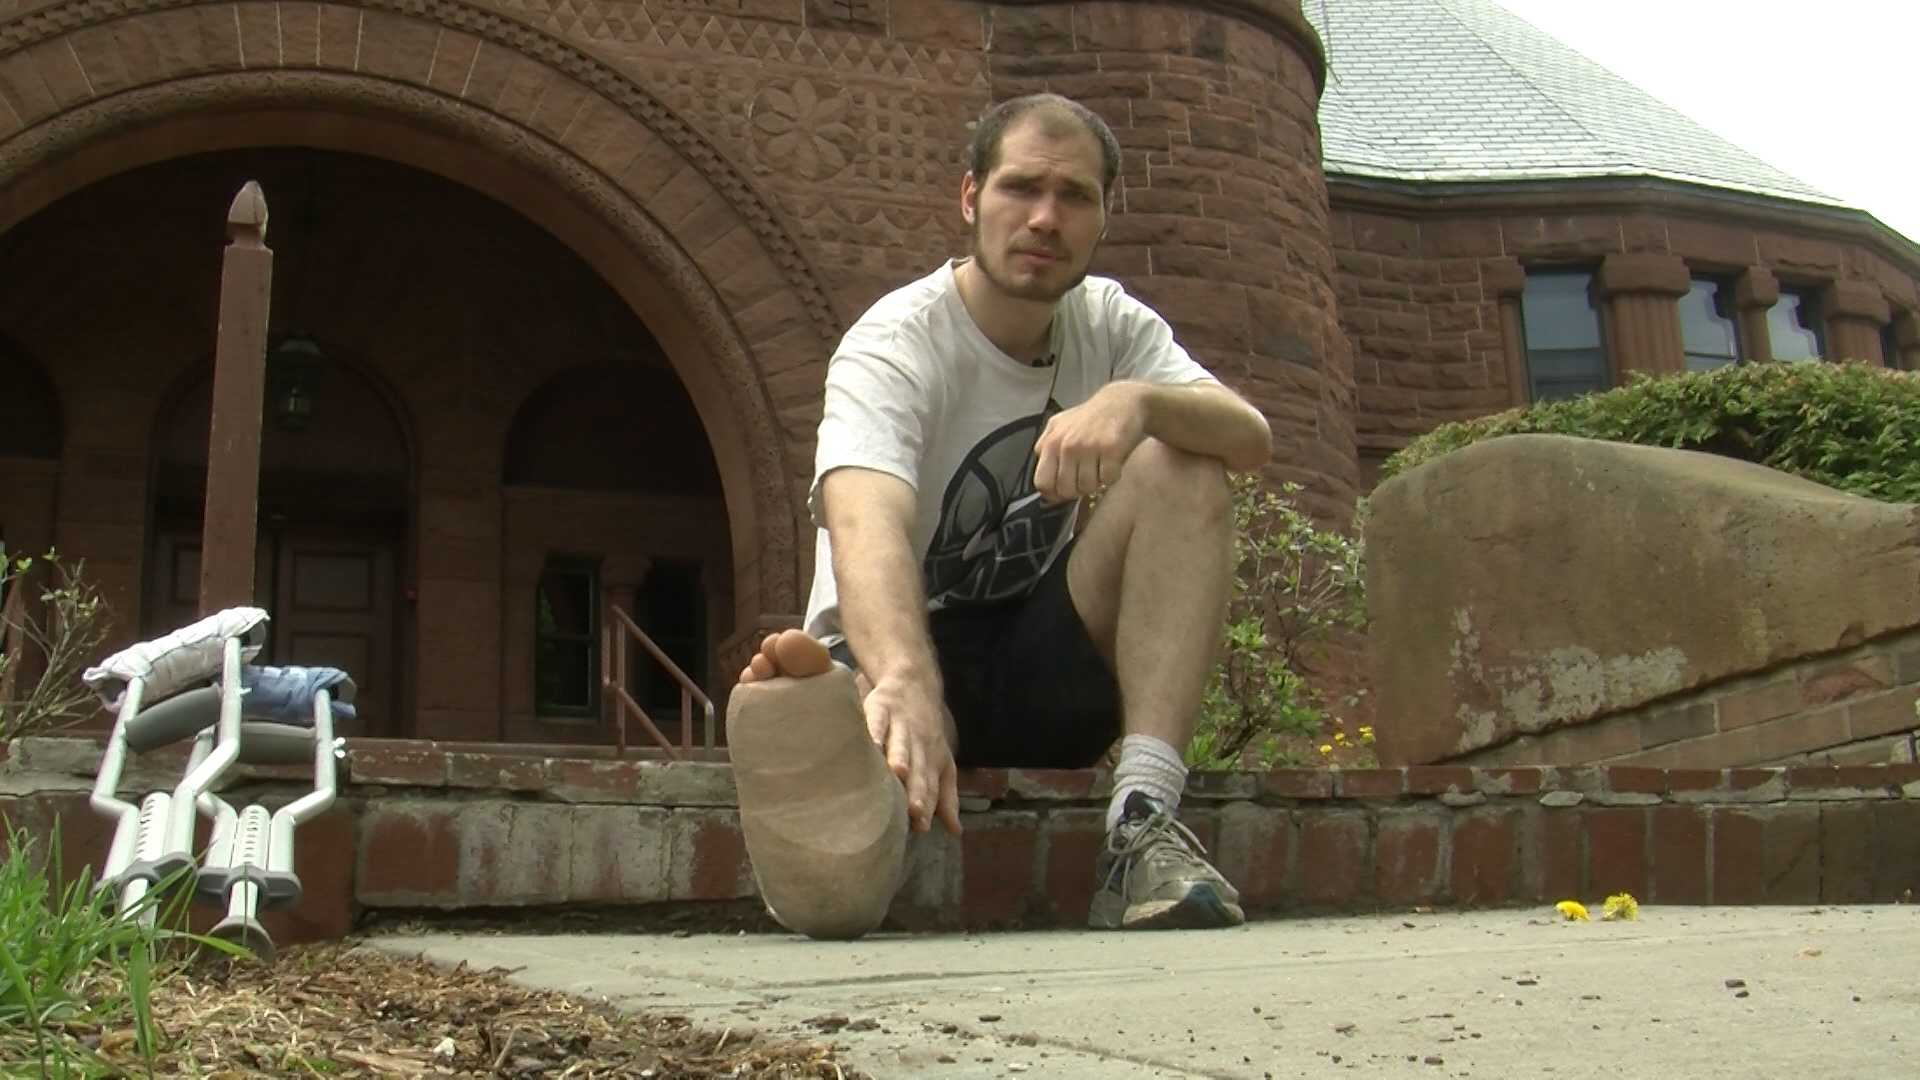 A Burlington man hit by a car while at work wants to warn those on the road to watch out.